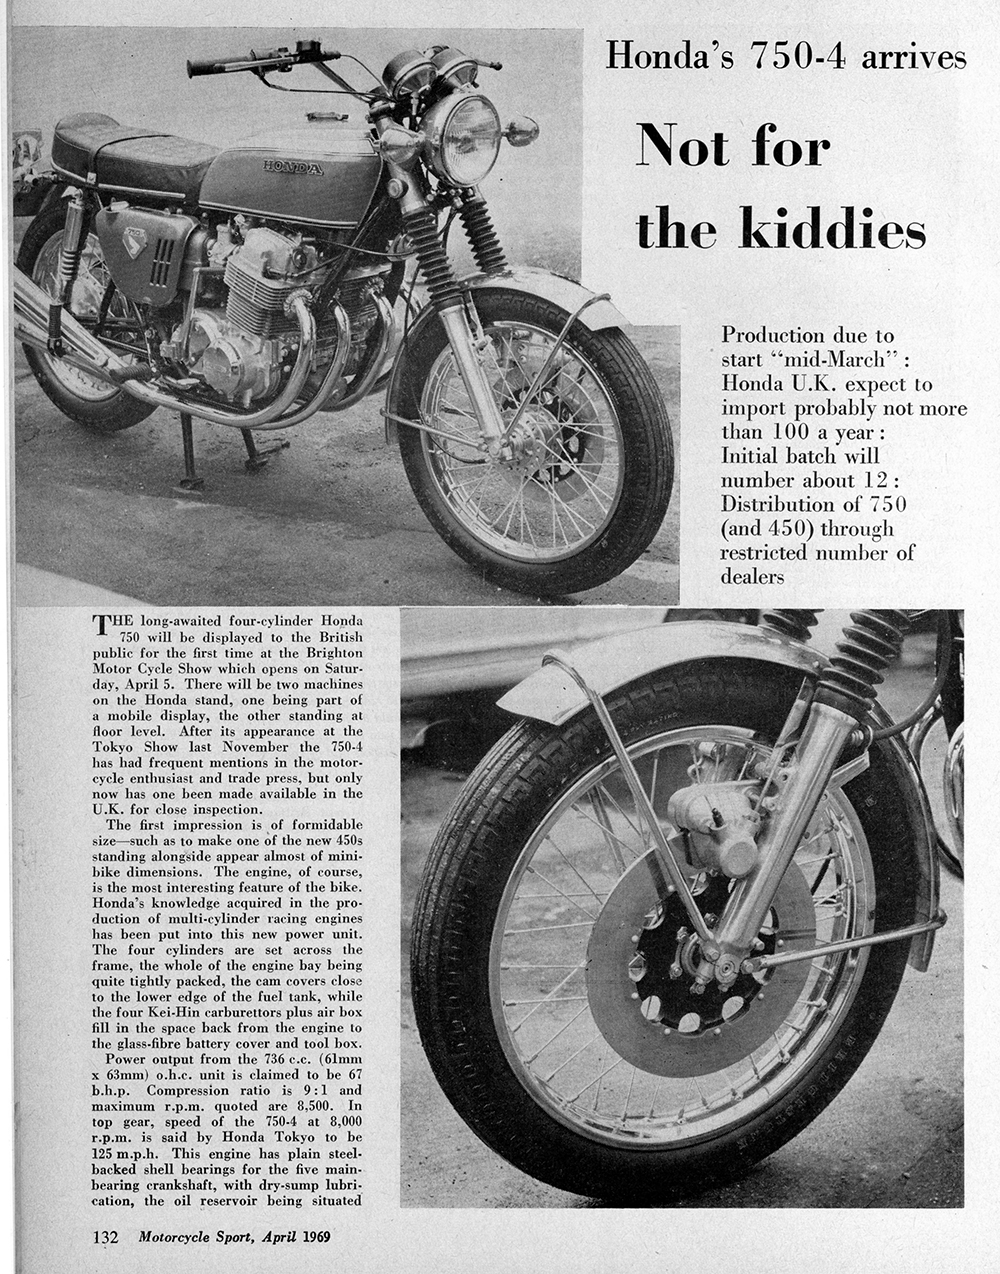 1969 Honda CB750-4 road test 1.jpg